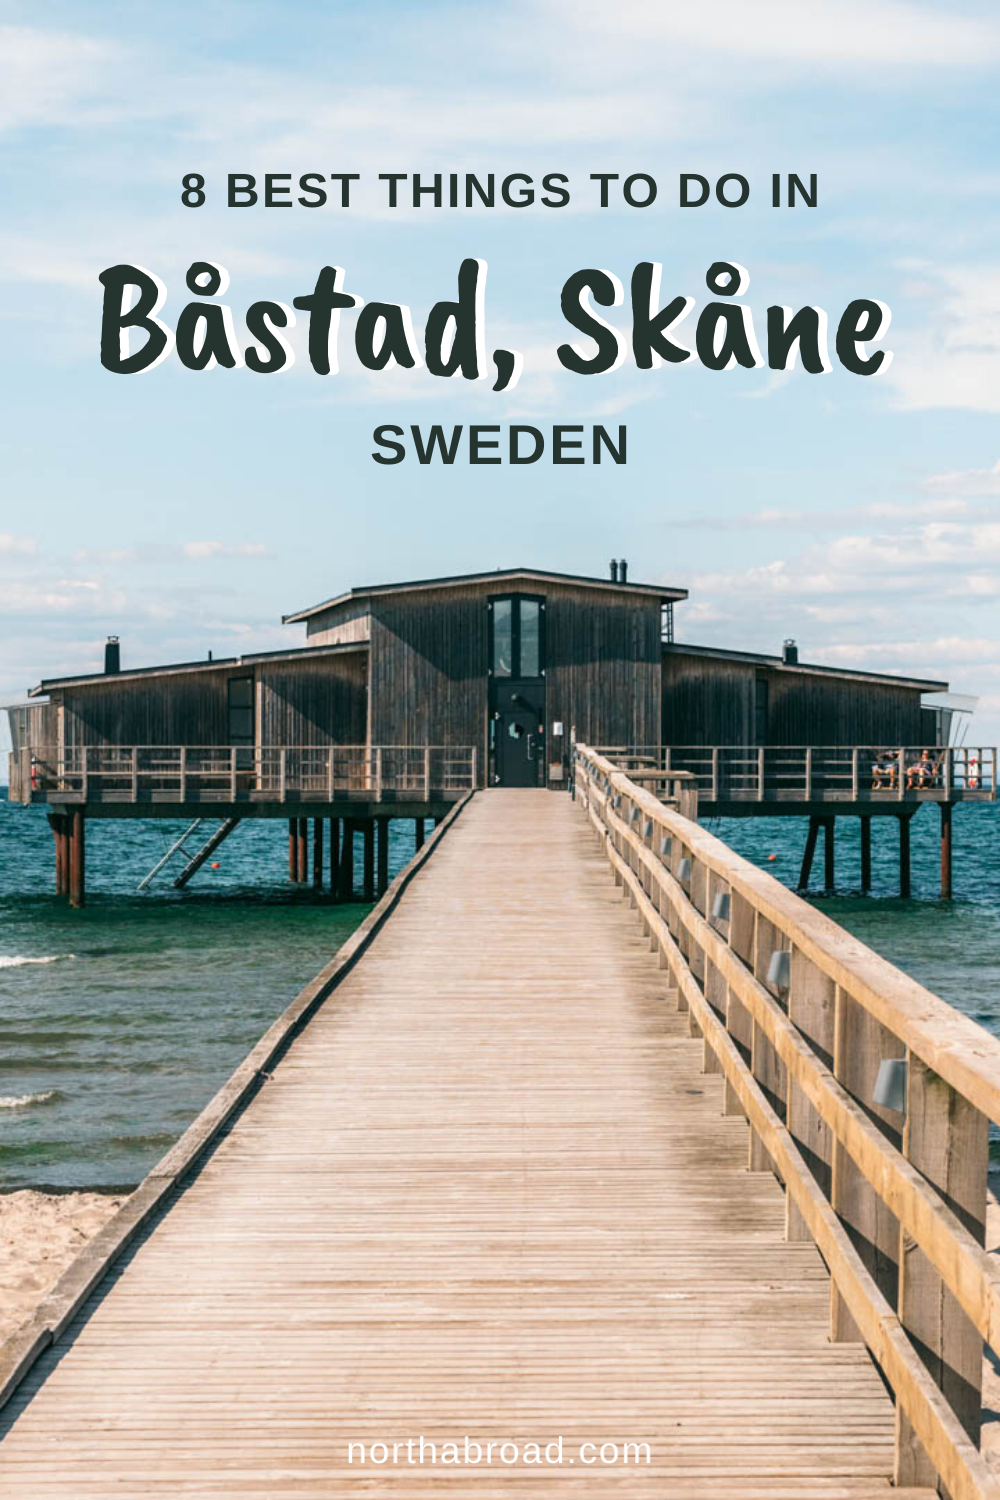 The 8 Best Things to Do in Båstad, Skåne in Southern Sweden